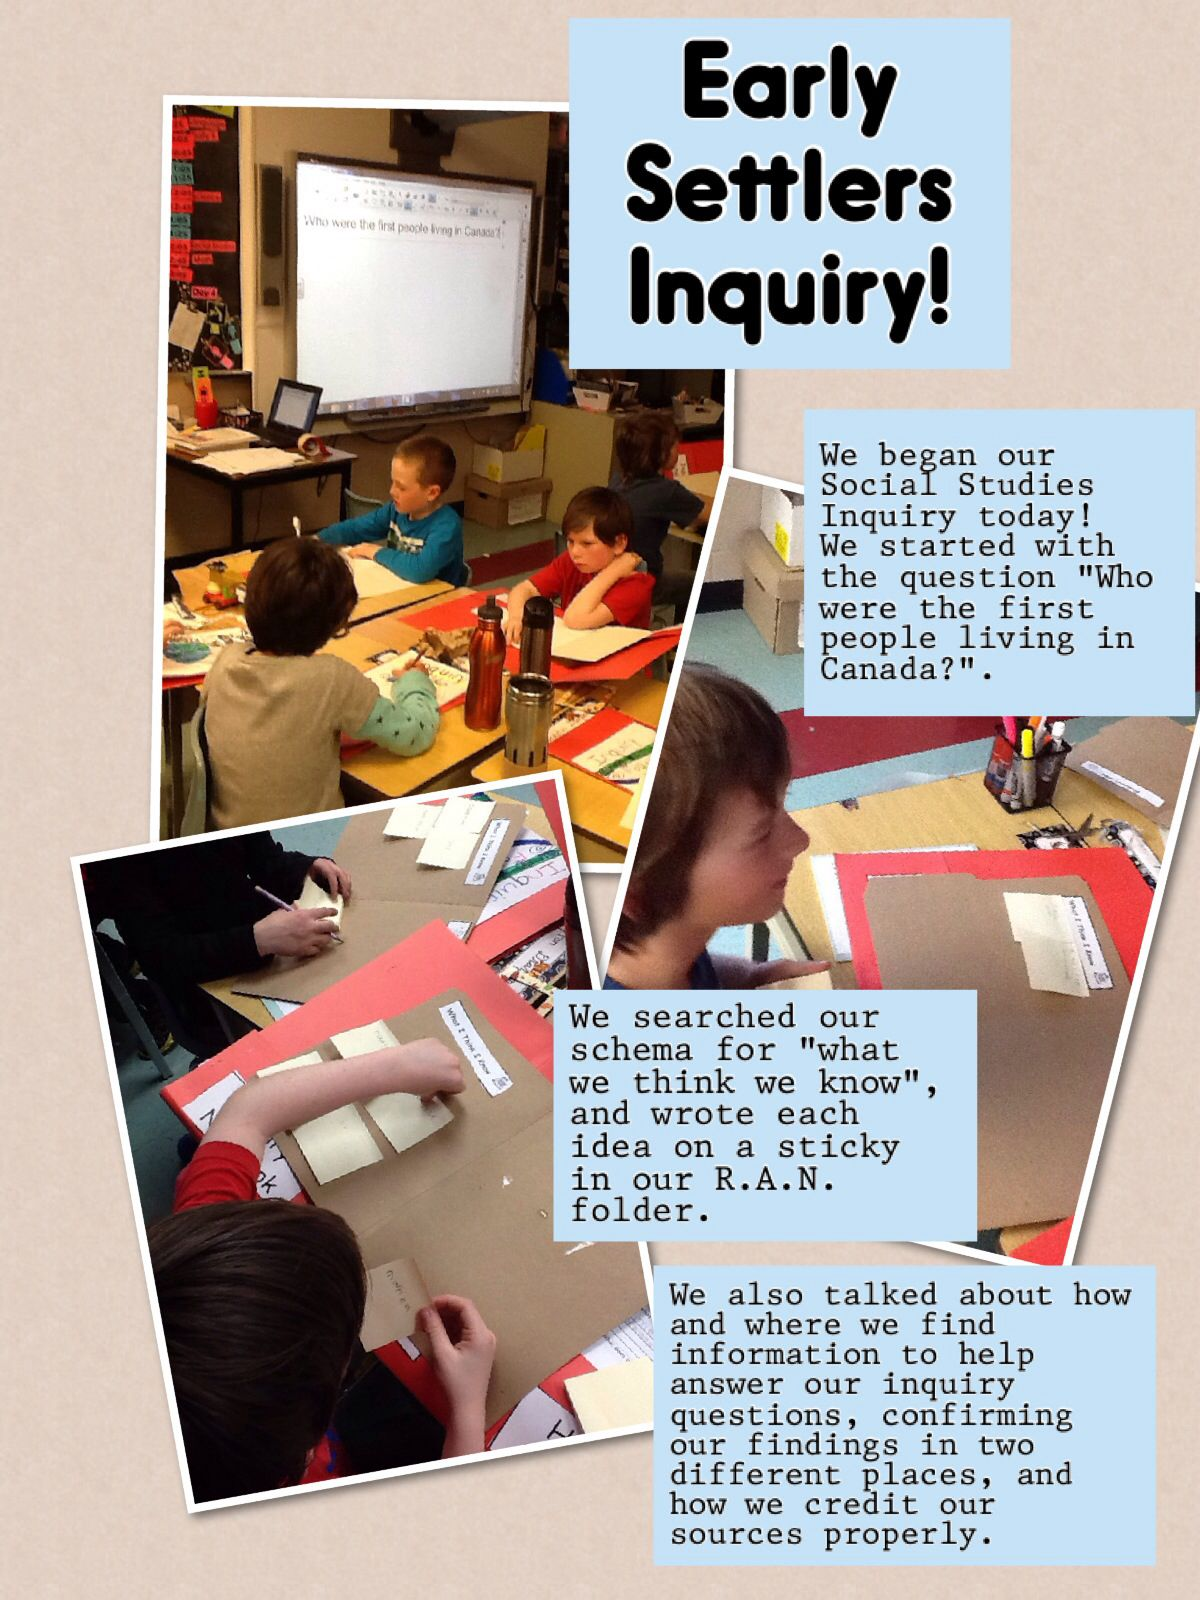 Early Settlers Inquiry